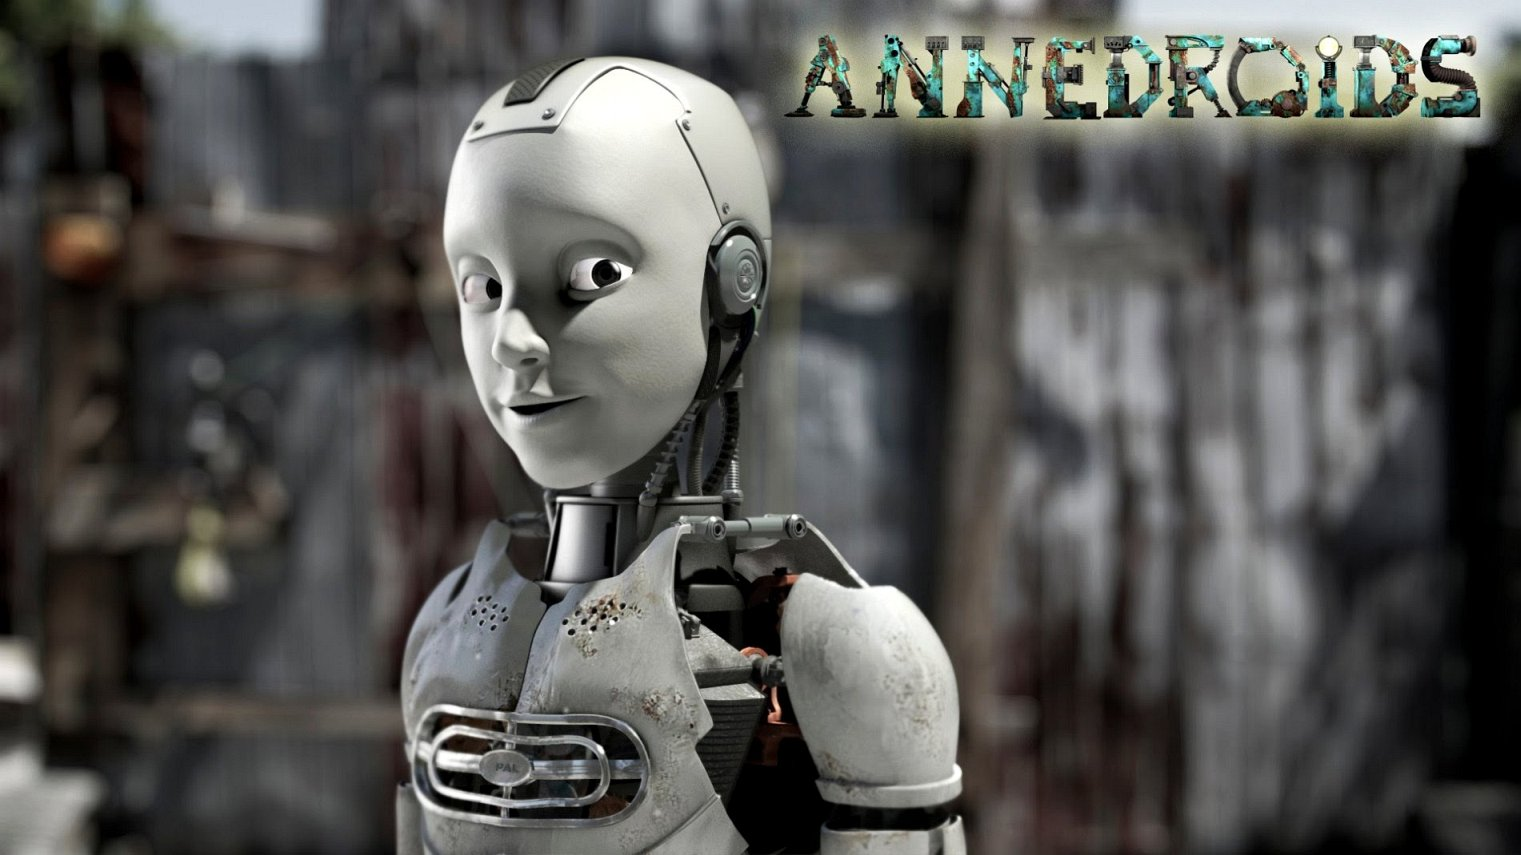 what time is Annedroids on